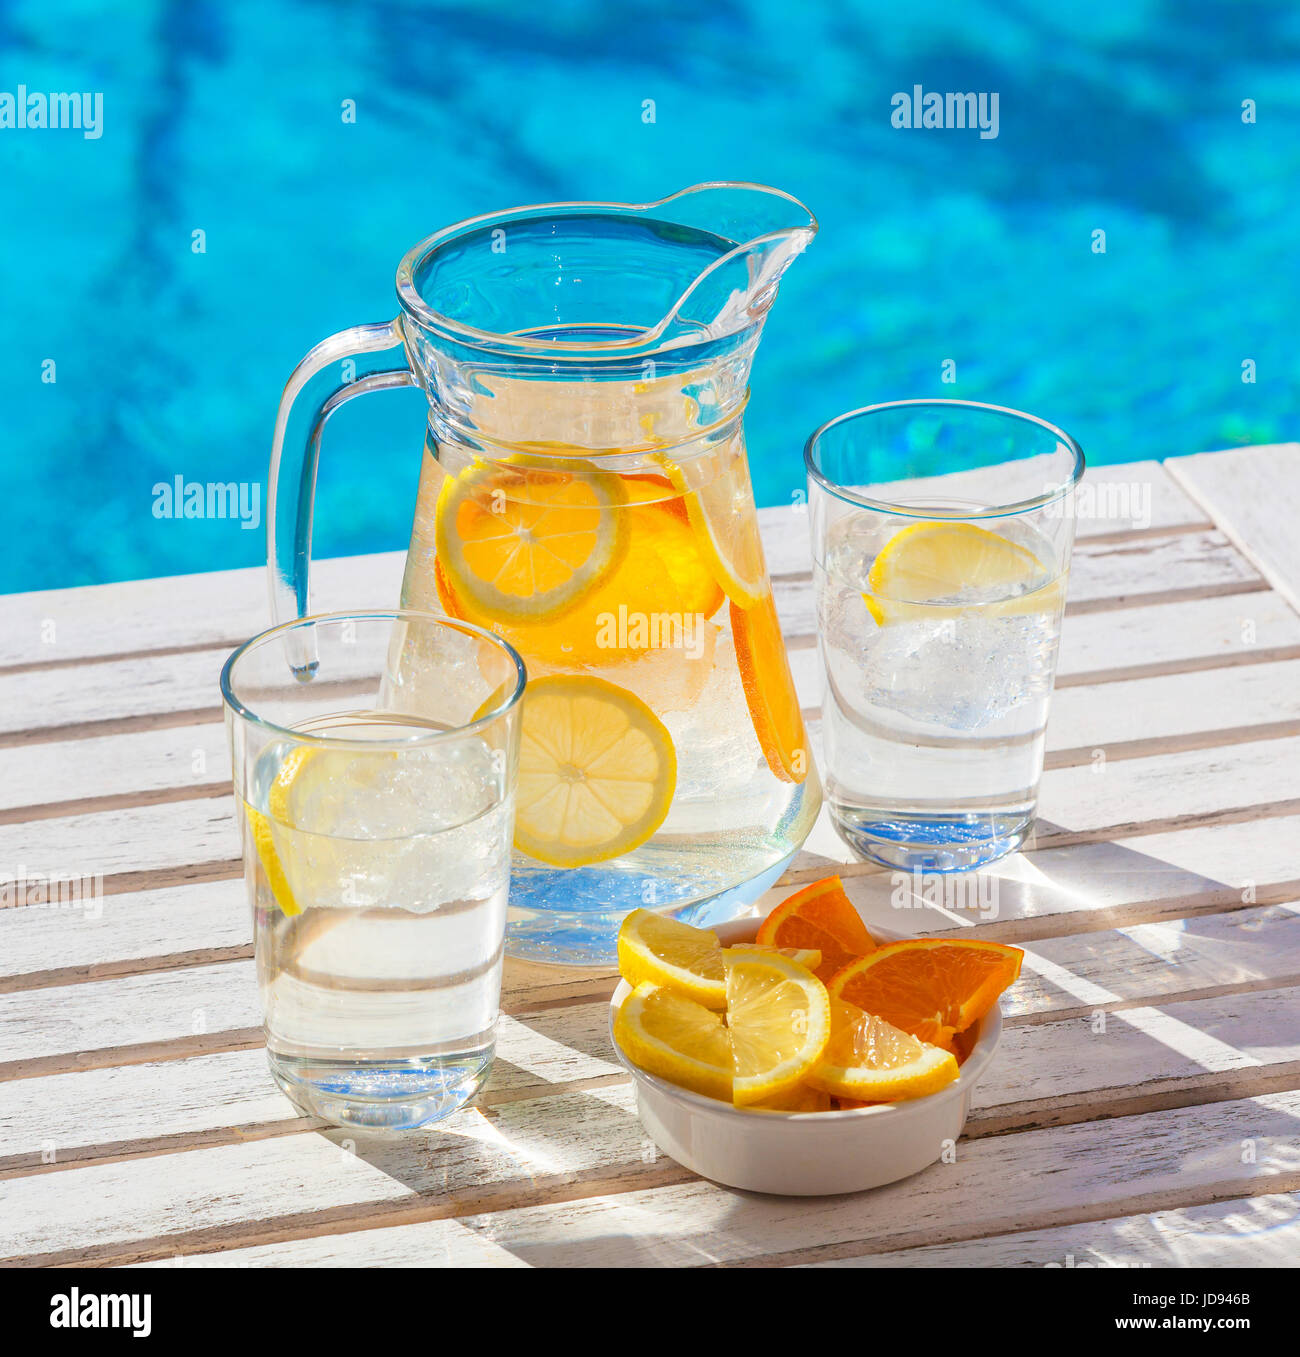 A jar and two glasses of refeshing ice water for hydration in hot weather. - Stock Image